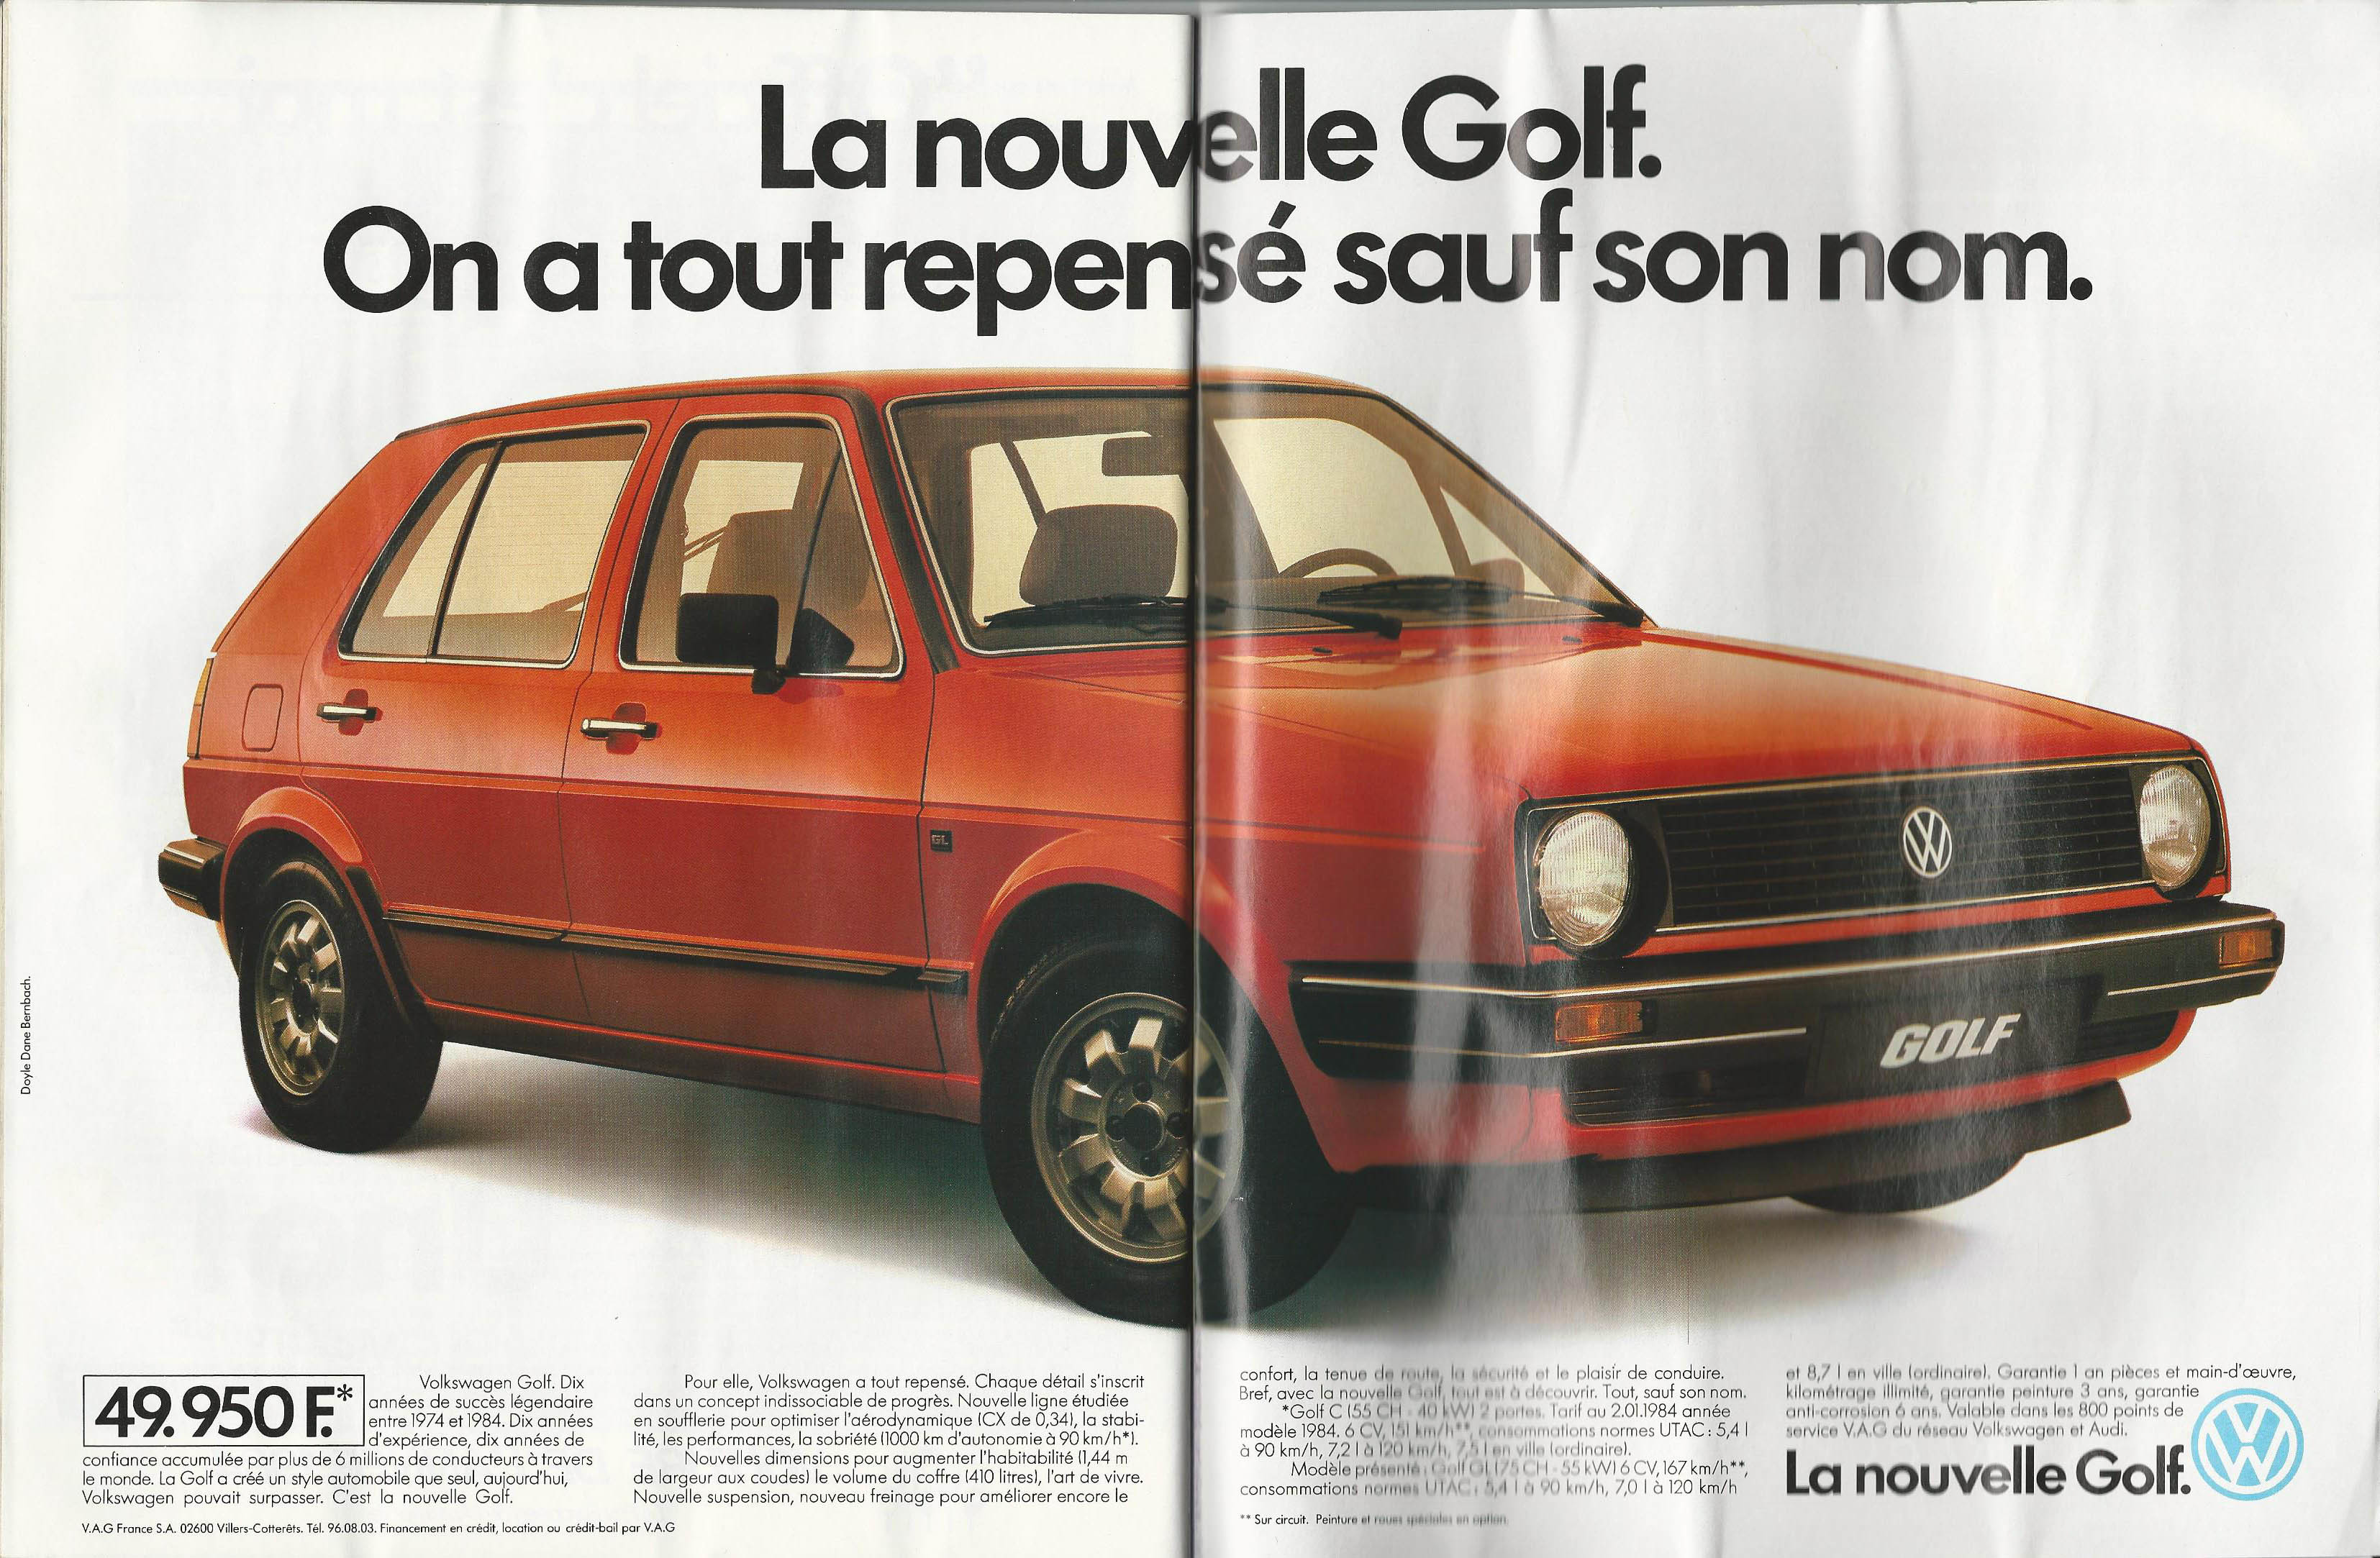 Moniteur Automobile 01 - 08 Mars 1984 (51)